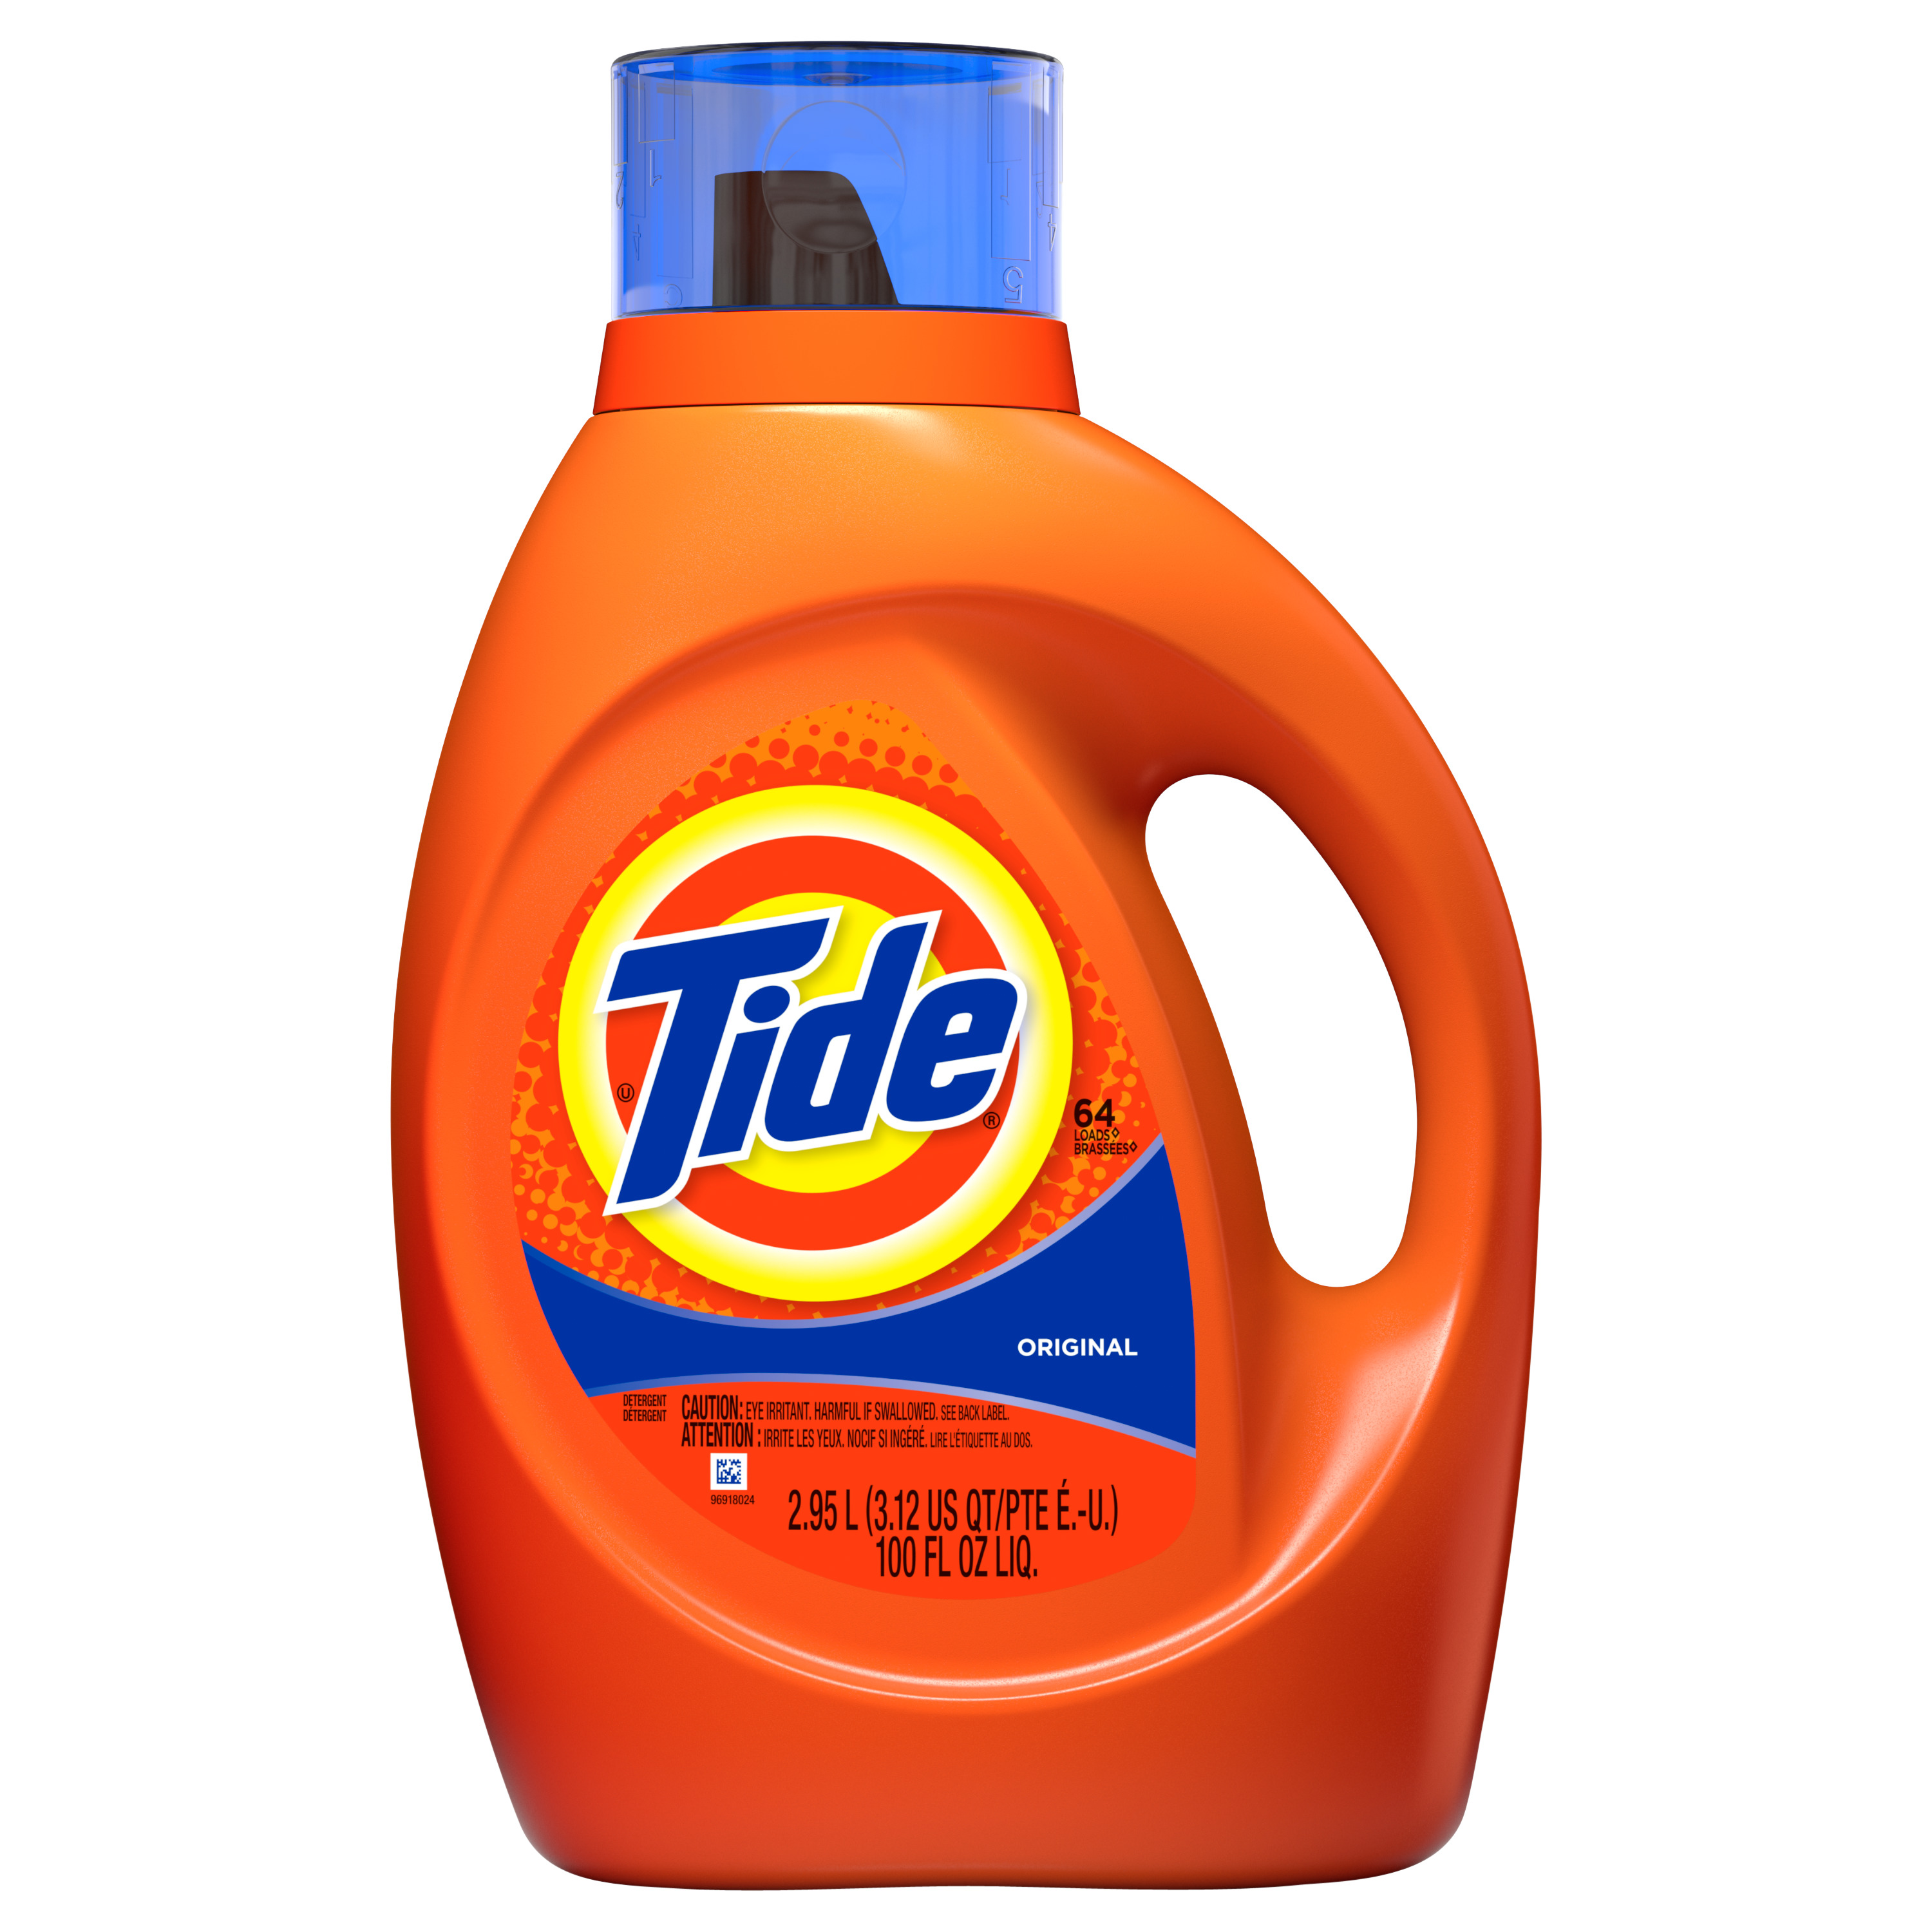 Tide Original Scent Liquid Laundry Detergent, 64 loads, 2.95 L